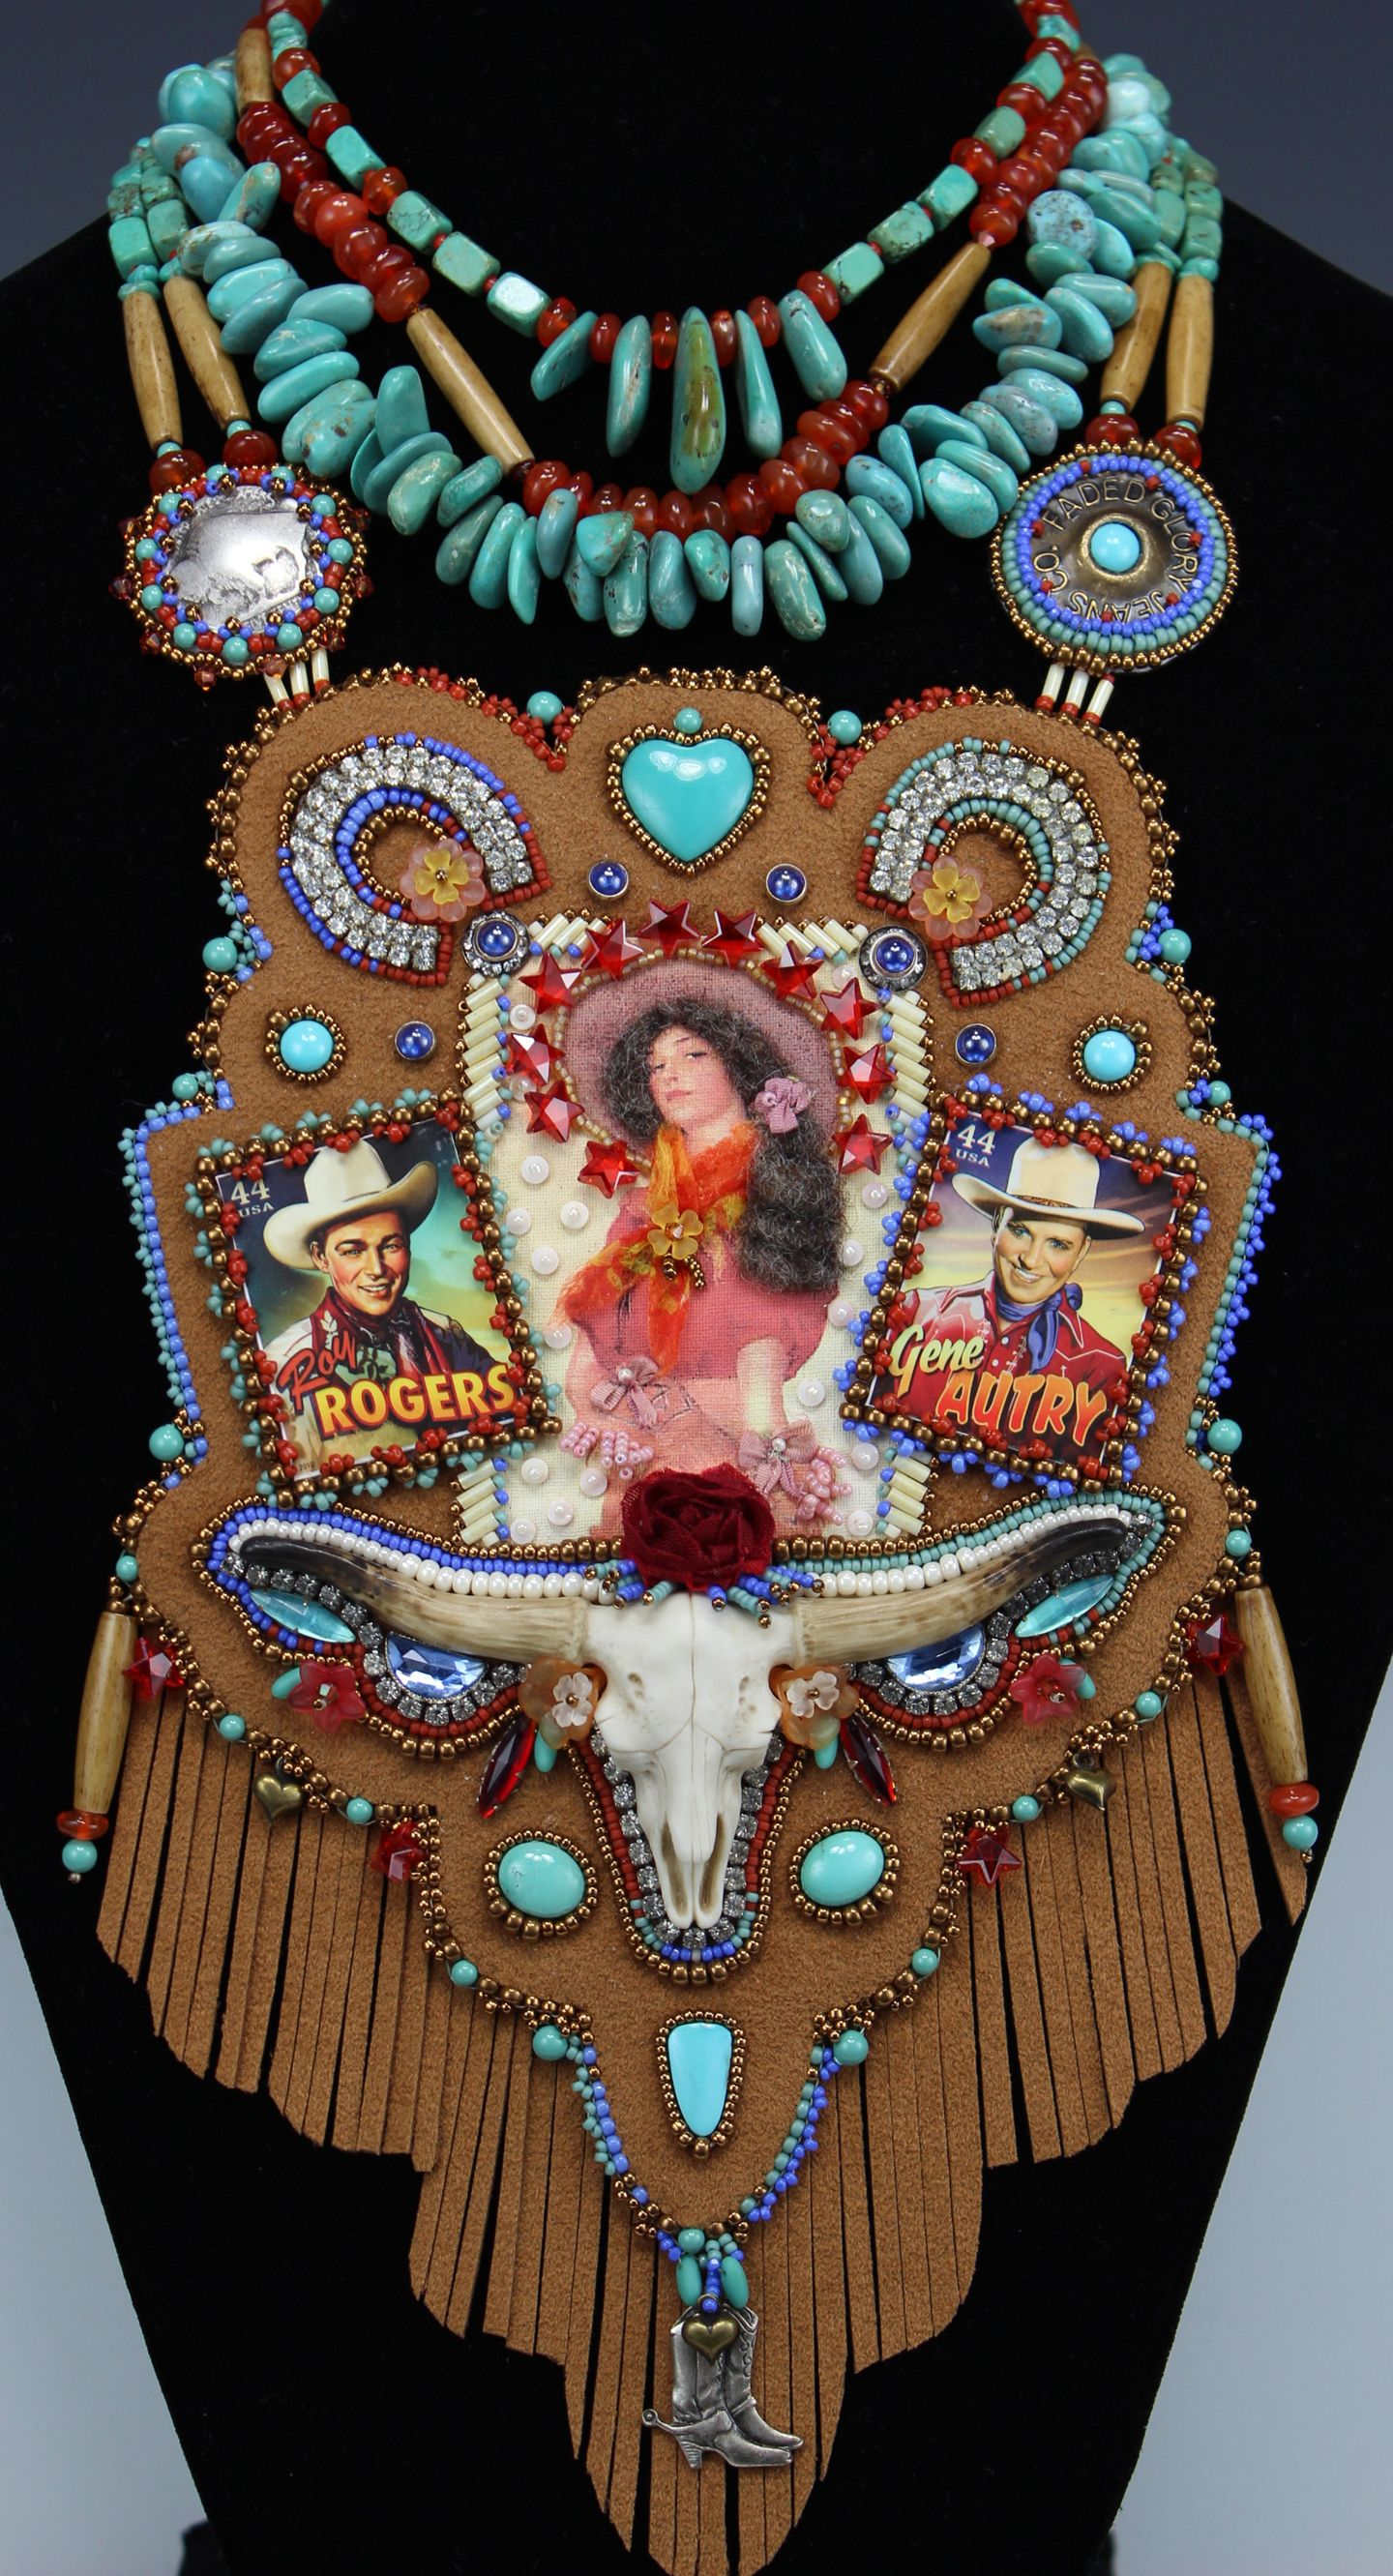 Sweetheart of the Cowboys by Diane Hyde 2014 - Bead embroidery, stringing. Vintage rhinestones, seed beads, charms, postage stamps, image on fabric, ribbon, wool roving hair, crystal stars and bicone beads, porcelain longhorn steer by Laura Mears, Ultrasuede, turquoise, carnelian, pearls, buttons, silk rose, bone hair pipe beads.